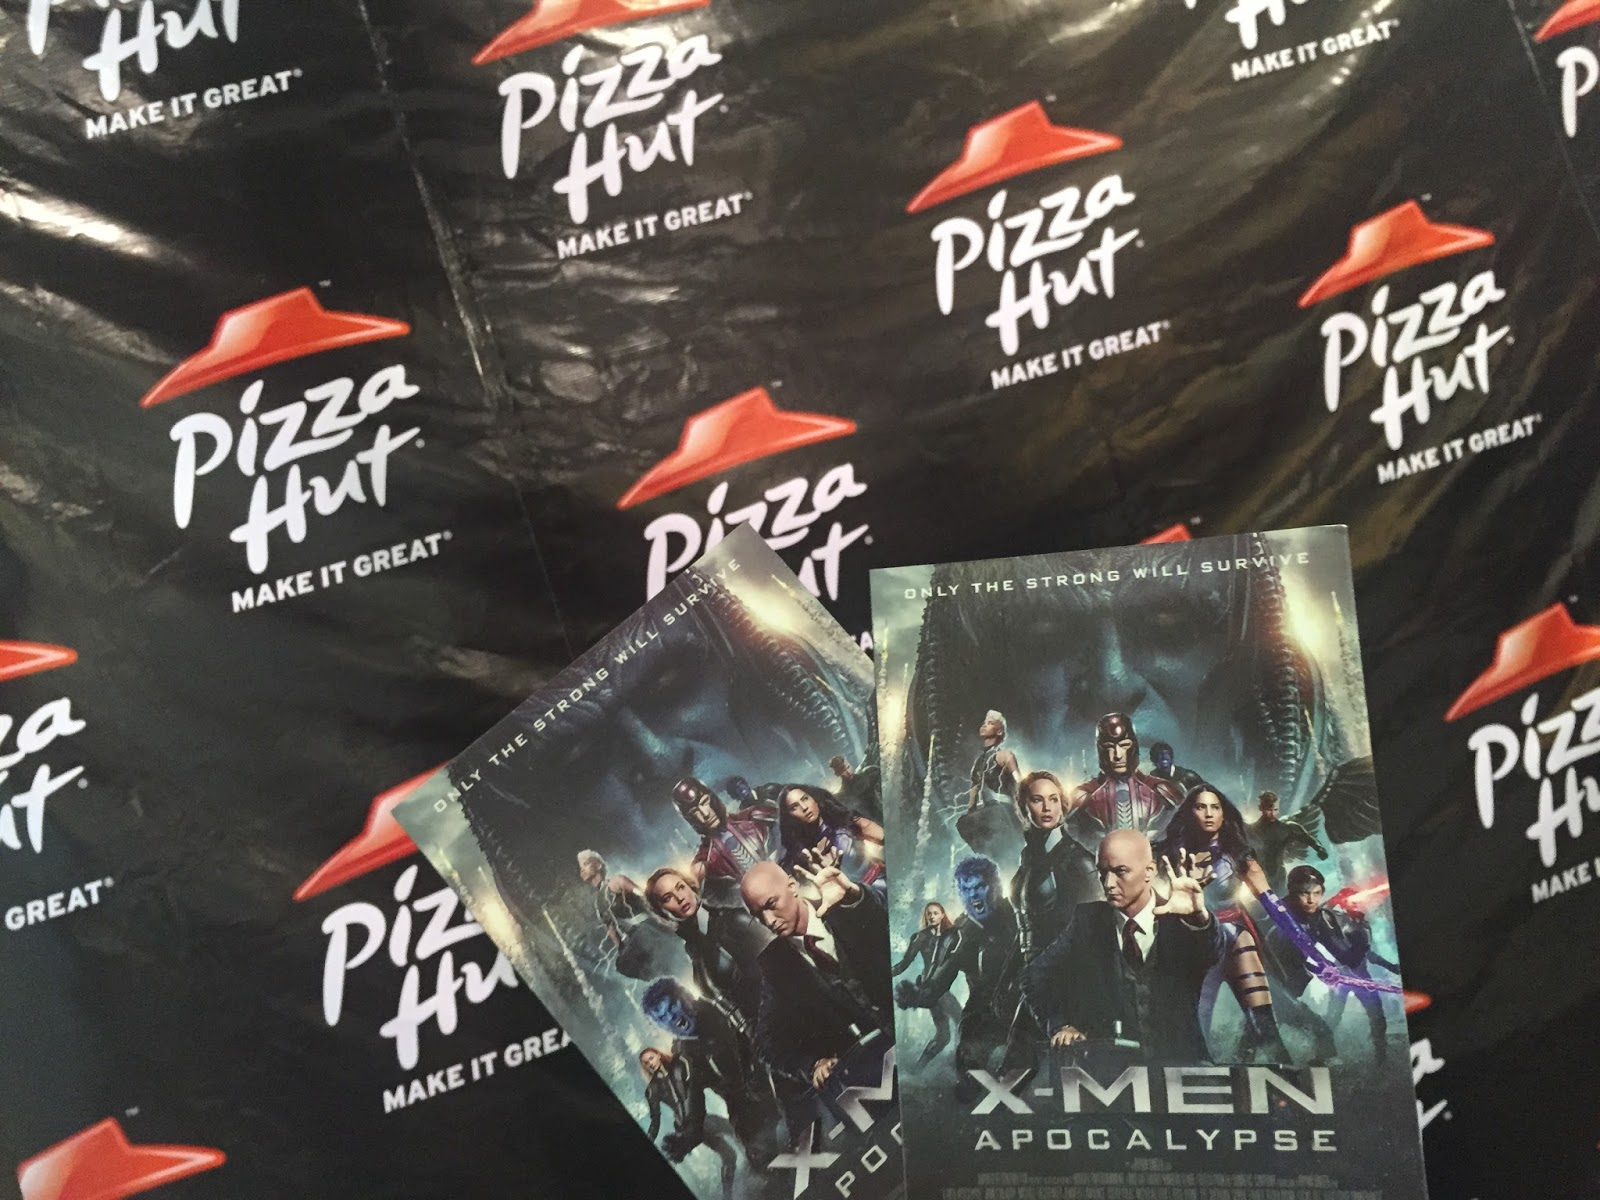 Pizza Hut S Blowout Pizza Presents X Men Apocalypse And Extreme